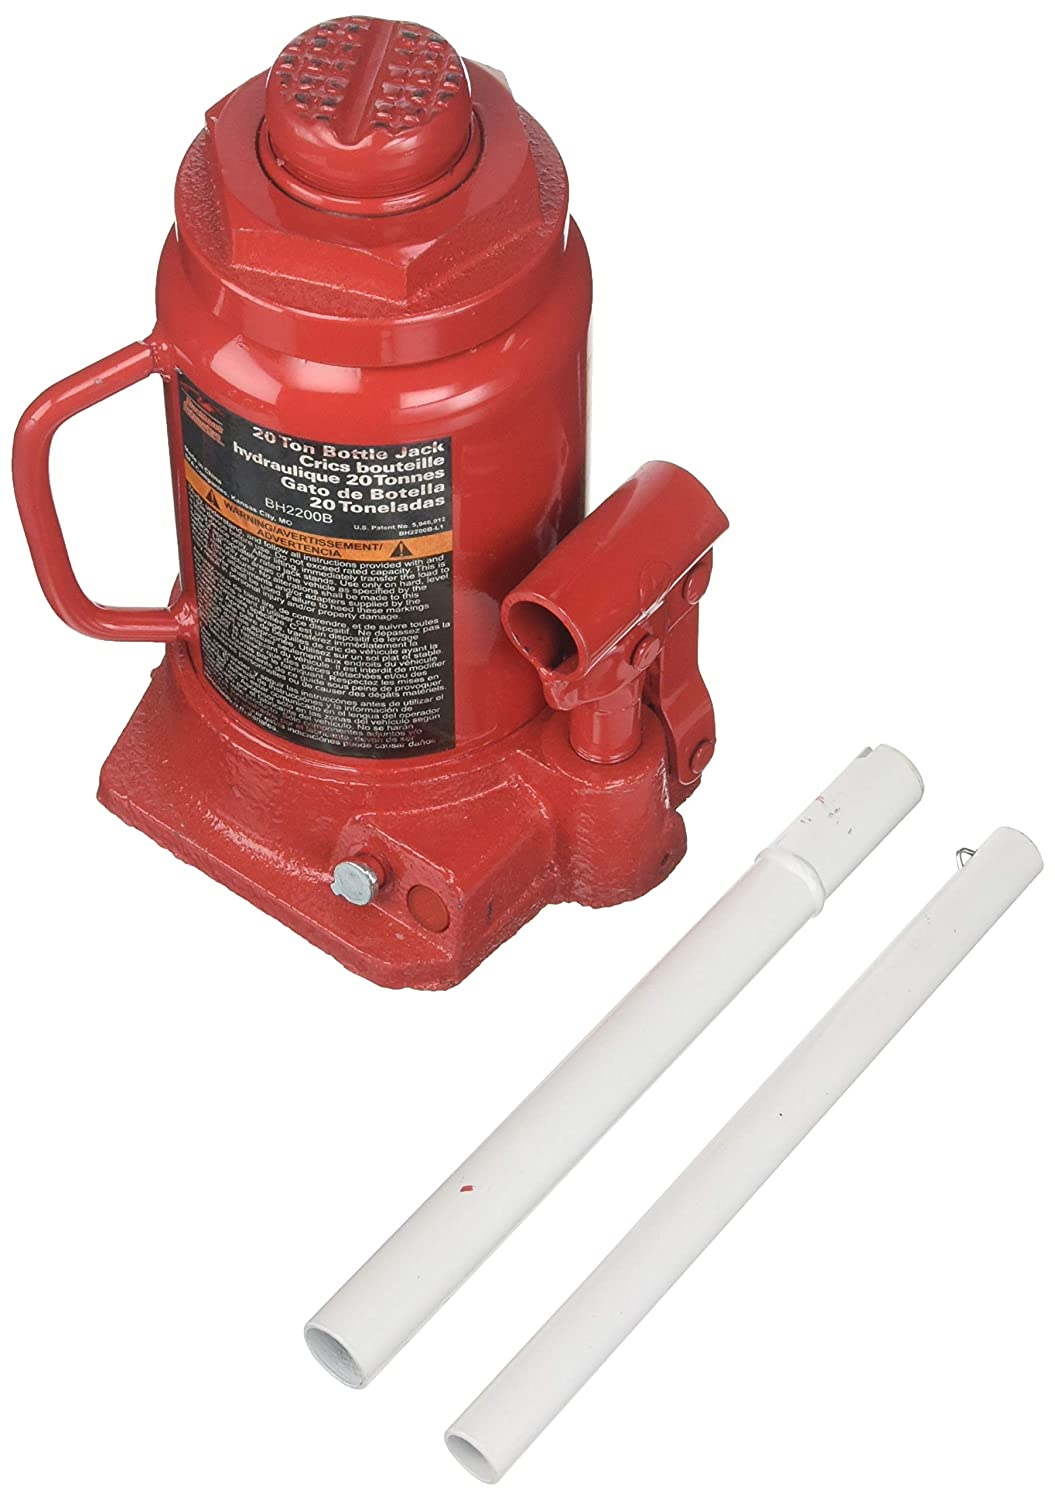 Blackhawk BH2200B Bottle Jack (20 Ton Hydraulic Side Pump)